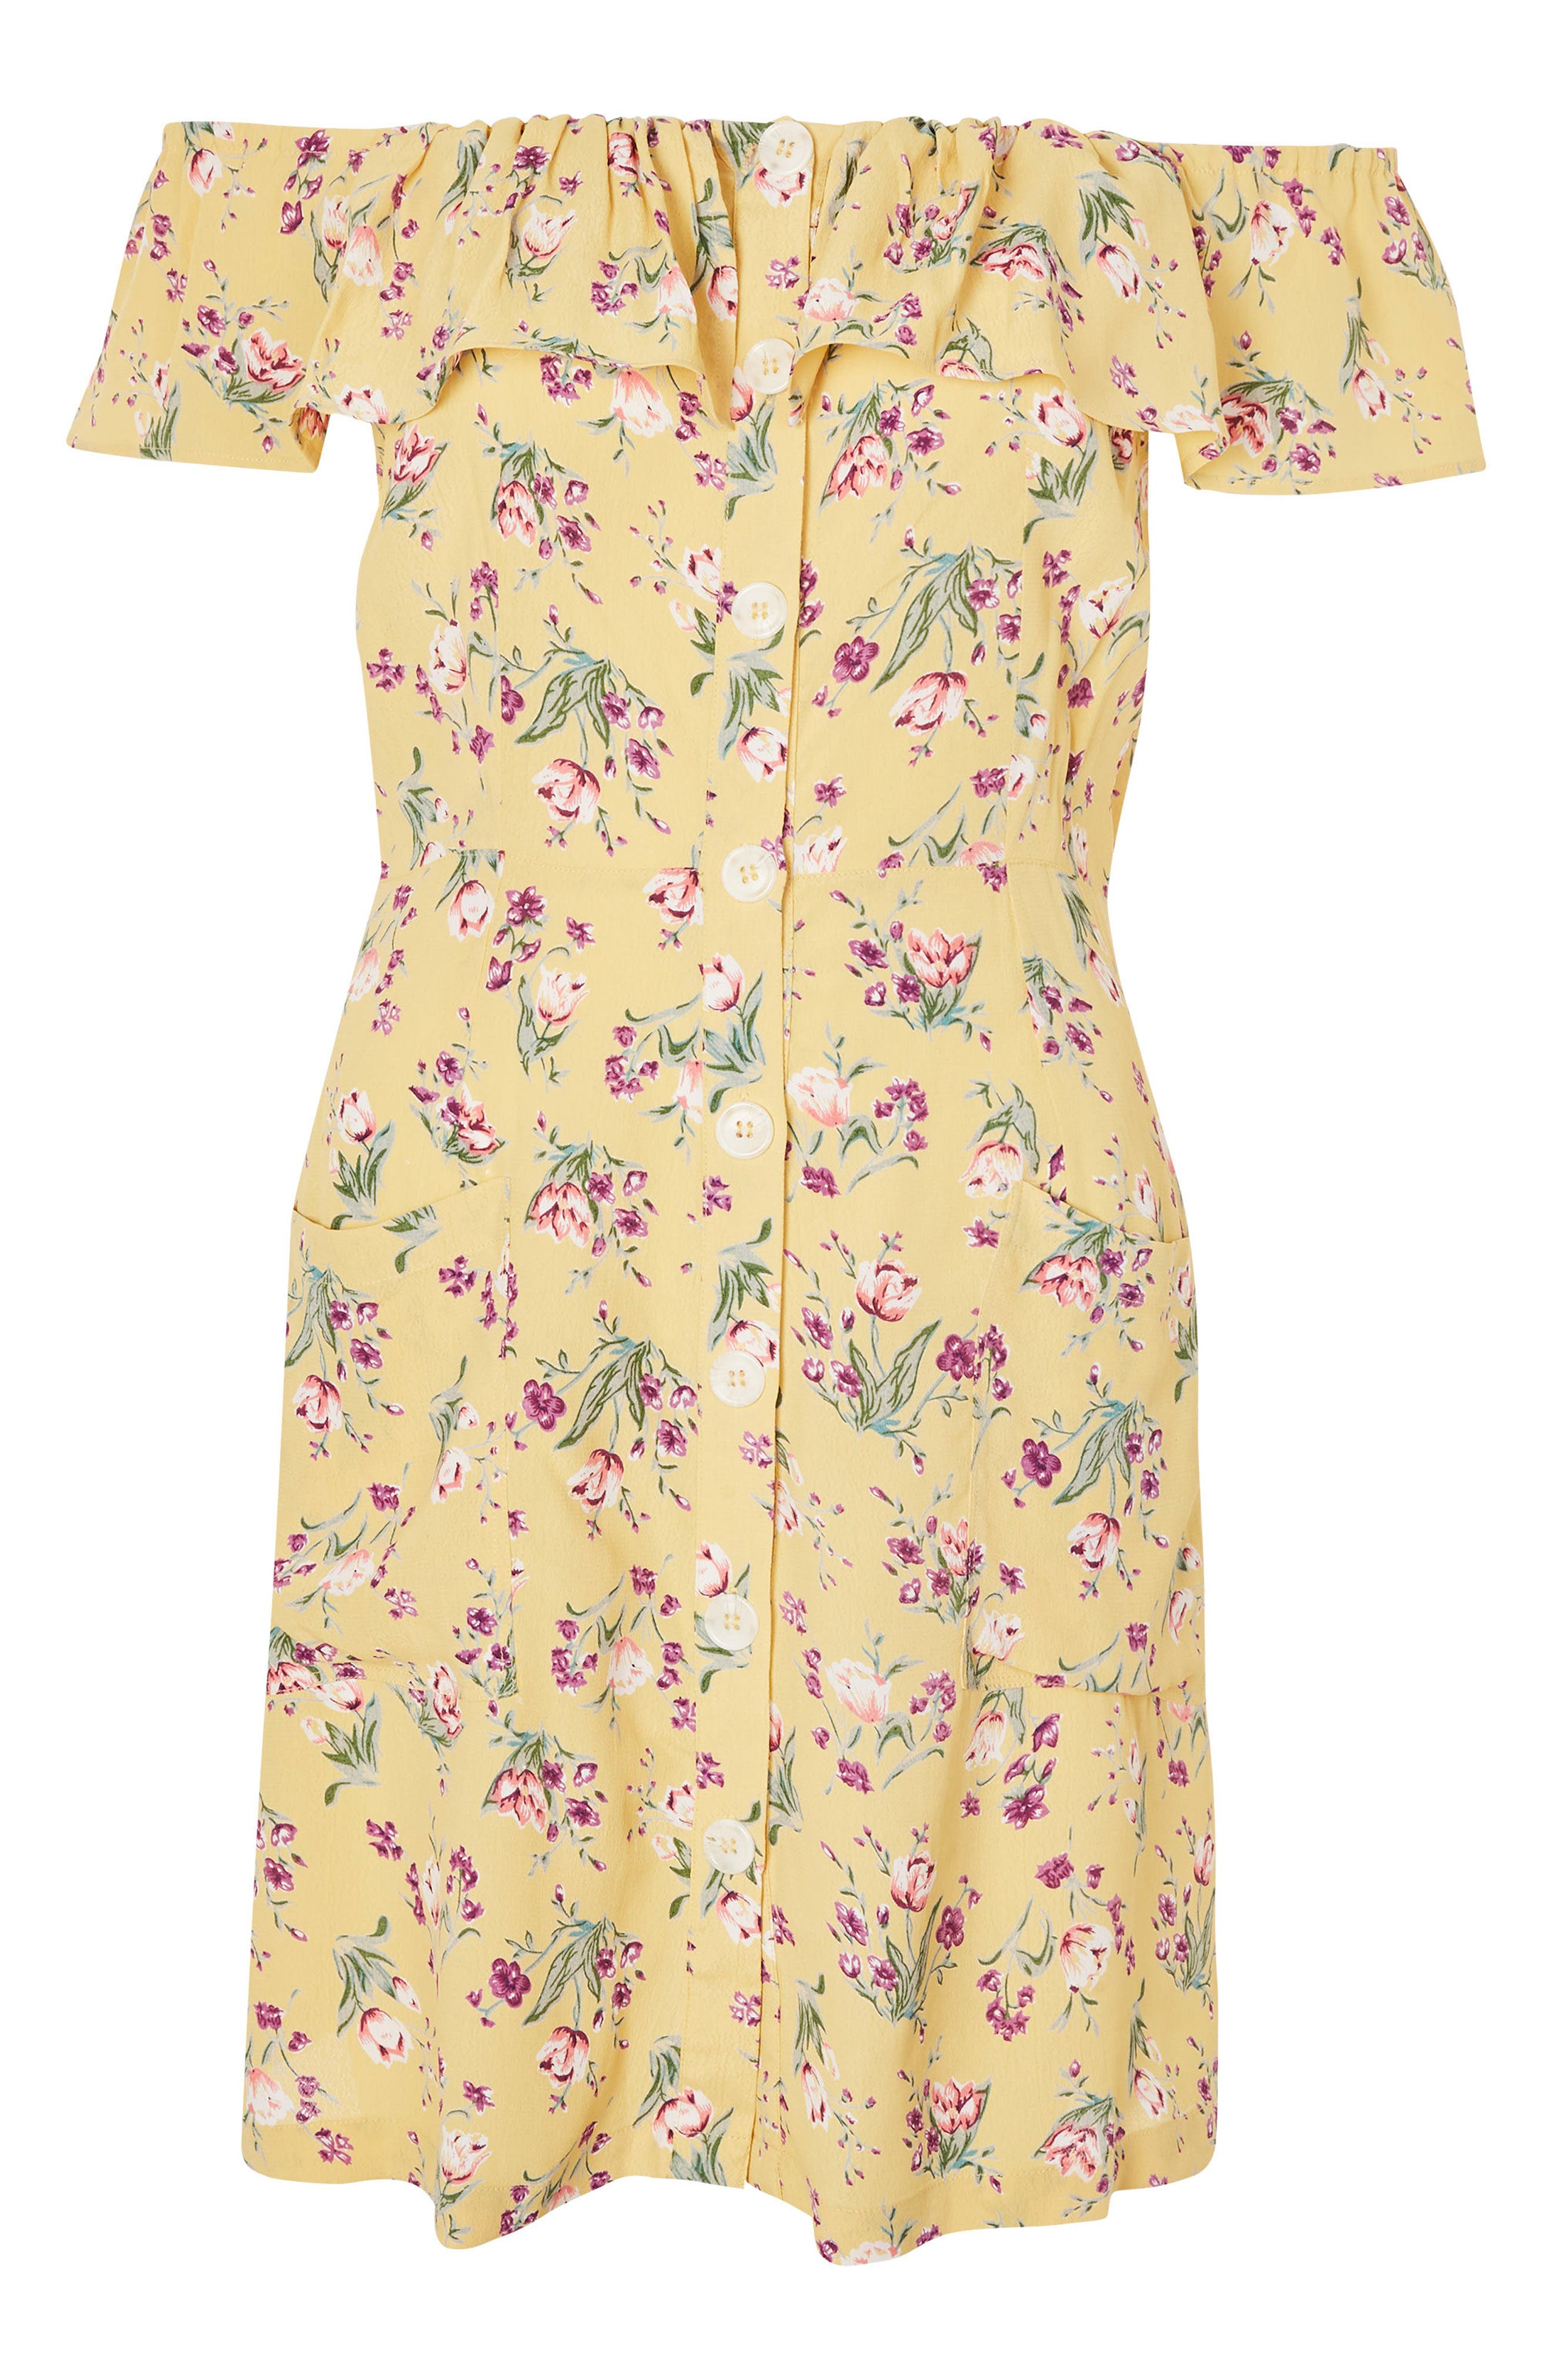 Spring Floral Minidress,                             Alternate thumbnail 4, color,                             700